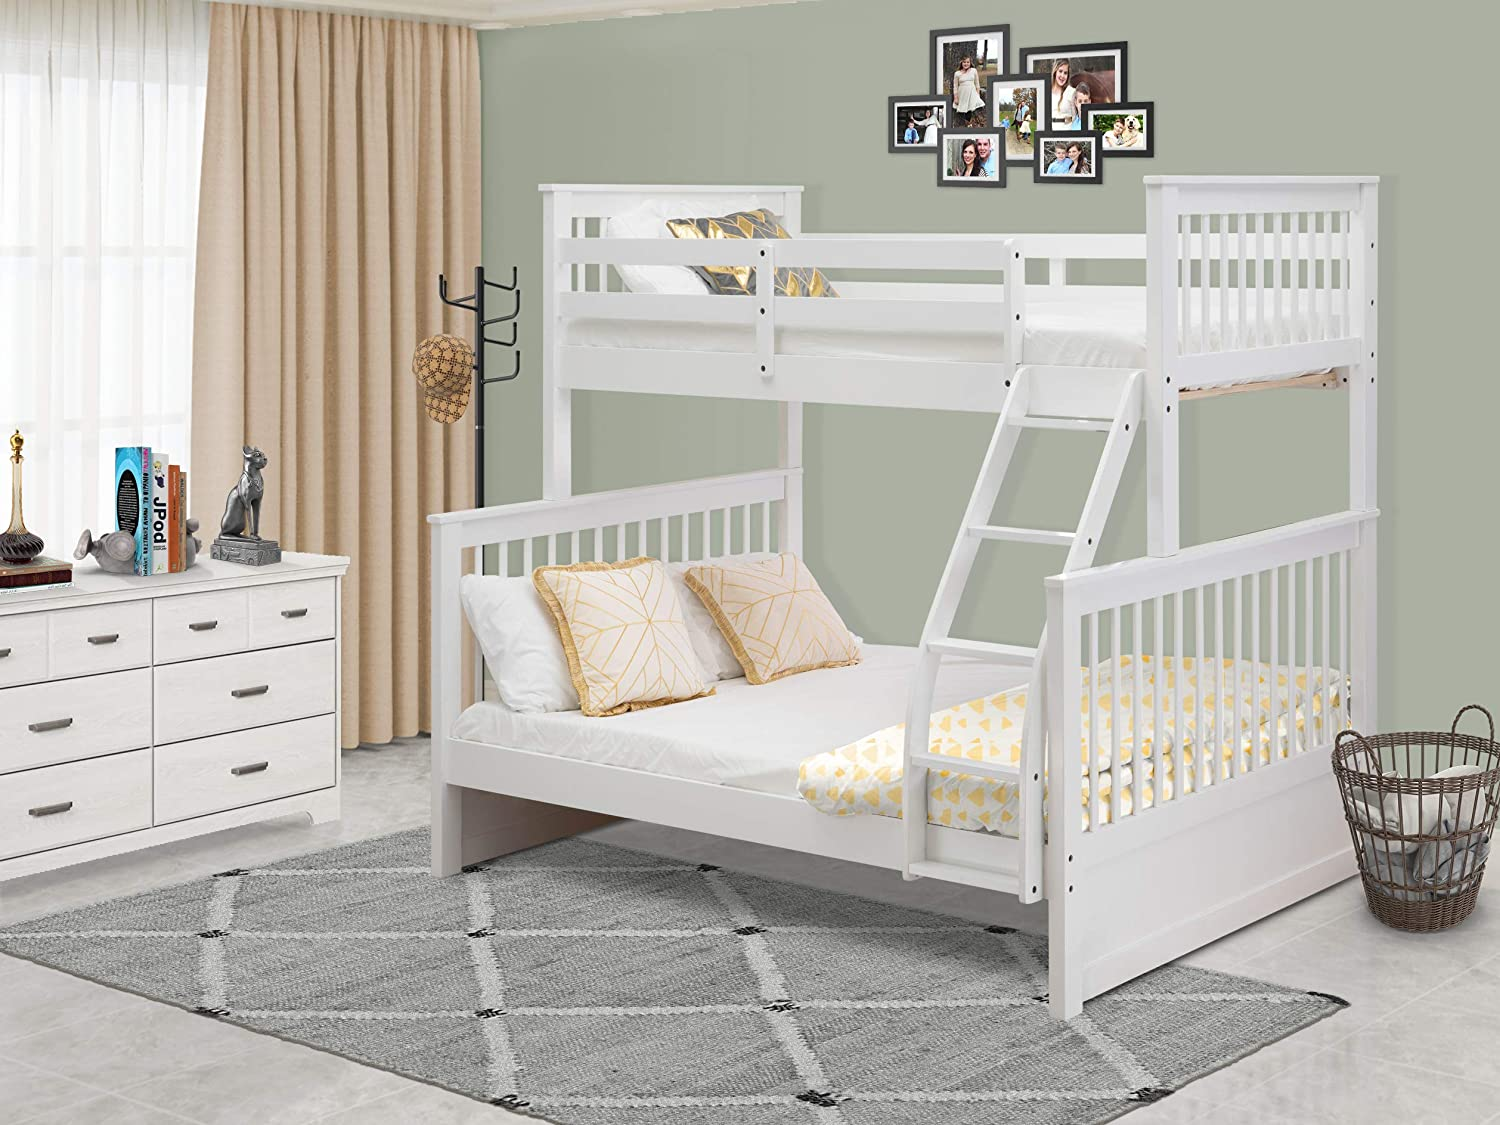 Amazon Com East West Furniture Odb 05 W Kids Bunk Bed Bedroom Sets Twin Full White Home Kitchen